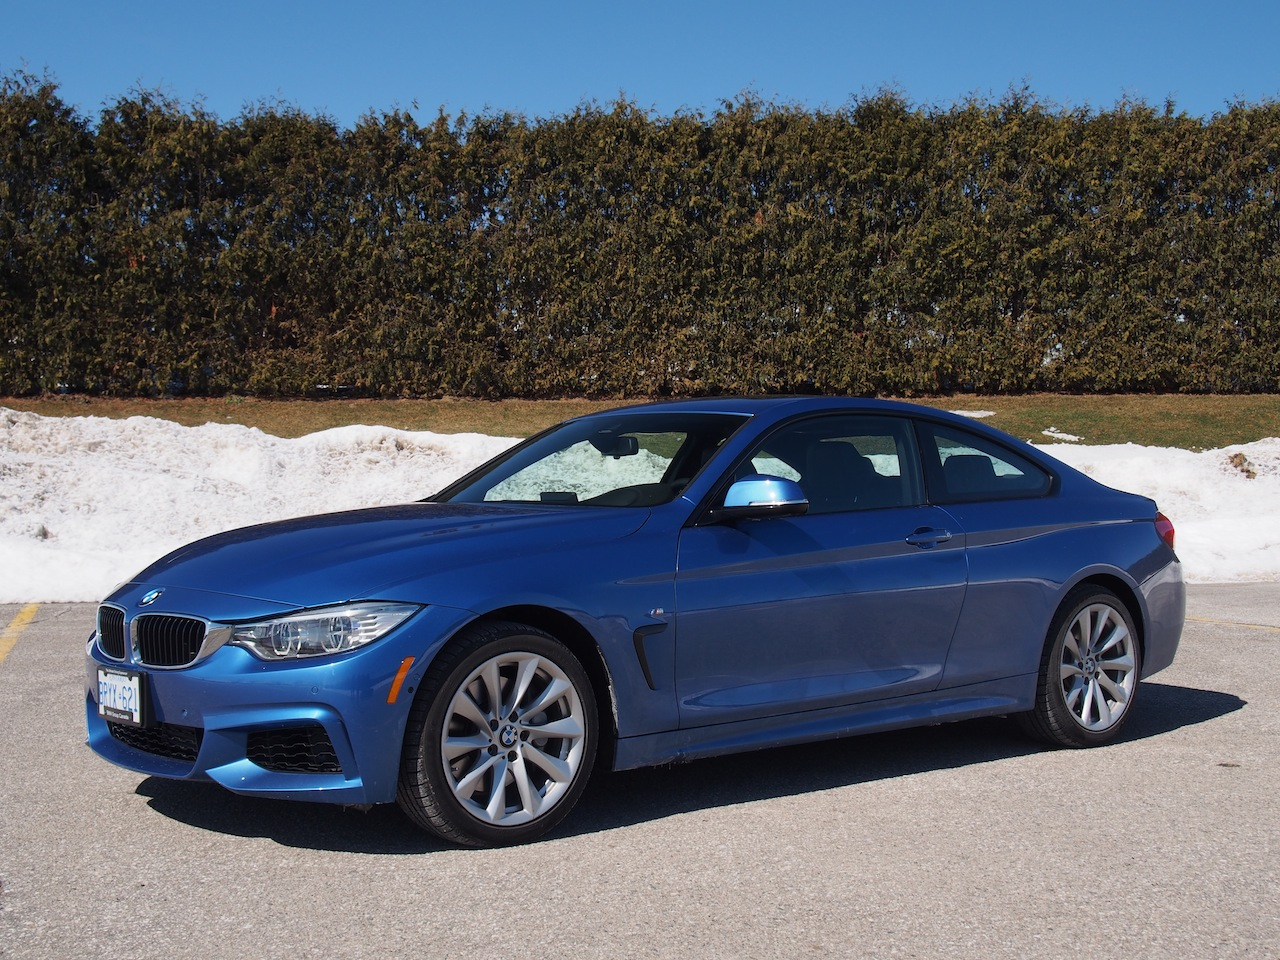 BMW I XDrive Review Cars Photos Test Drives And - Bmw 435i gran coupe xdrive